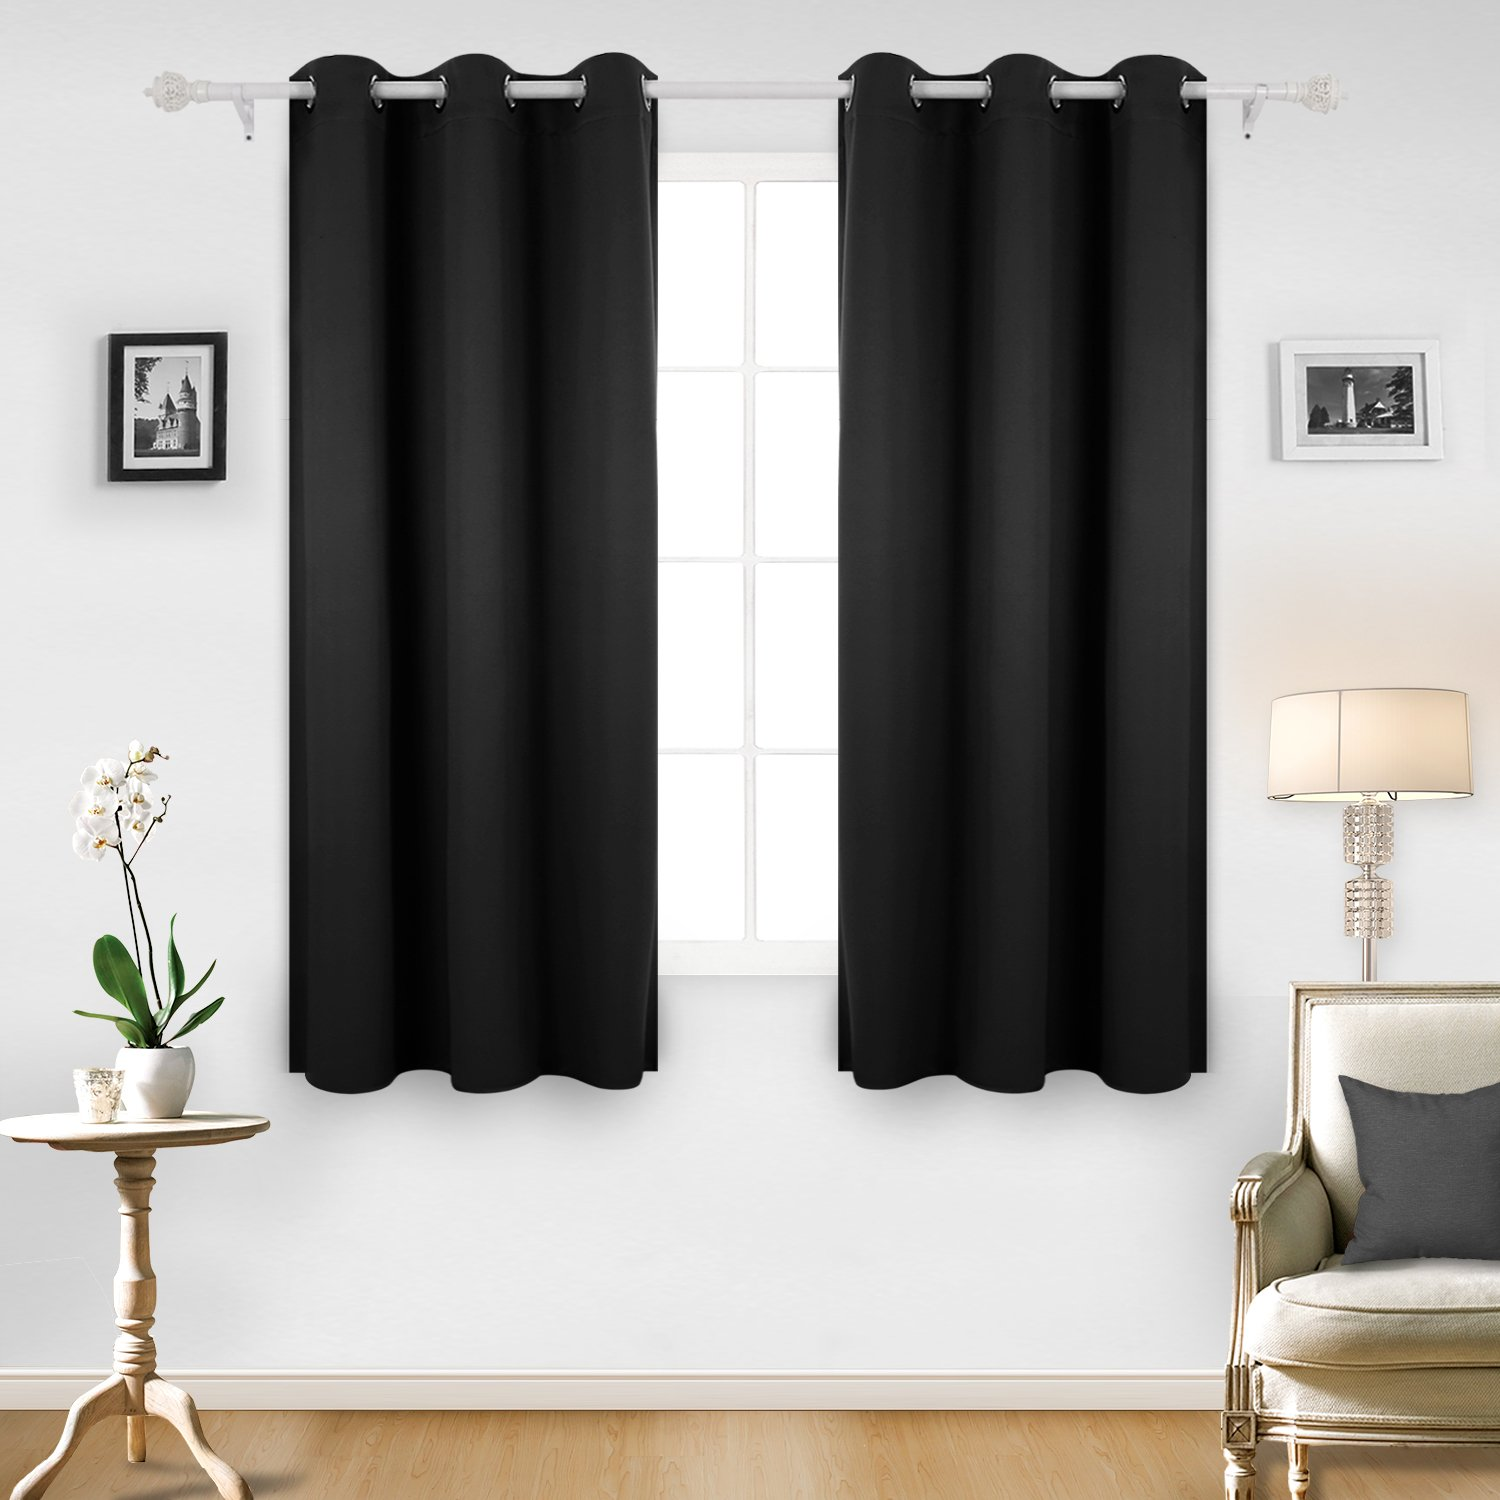 Deconovo Room Darkening Thermal Insulated Blackout Grommet Window Curtain for Living Room, Black